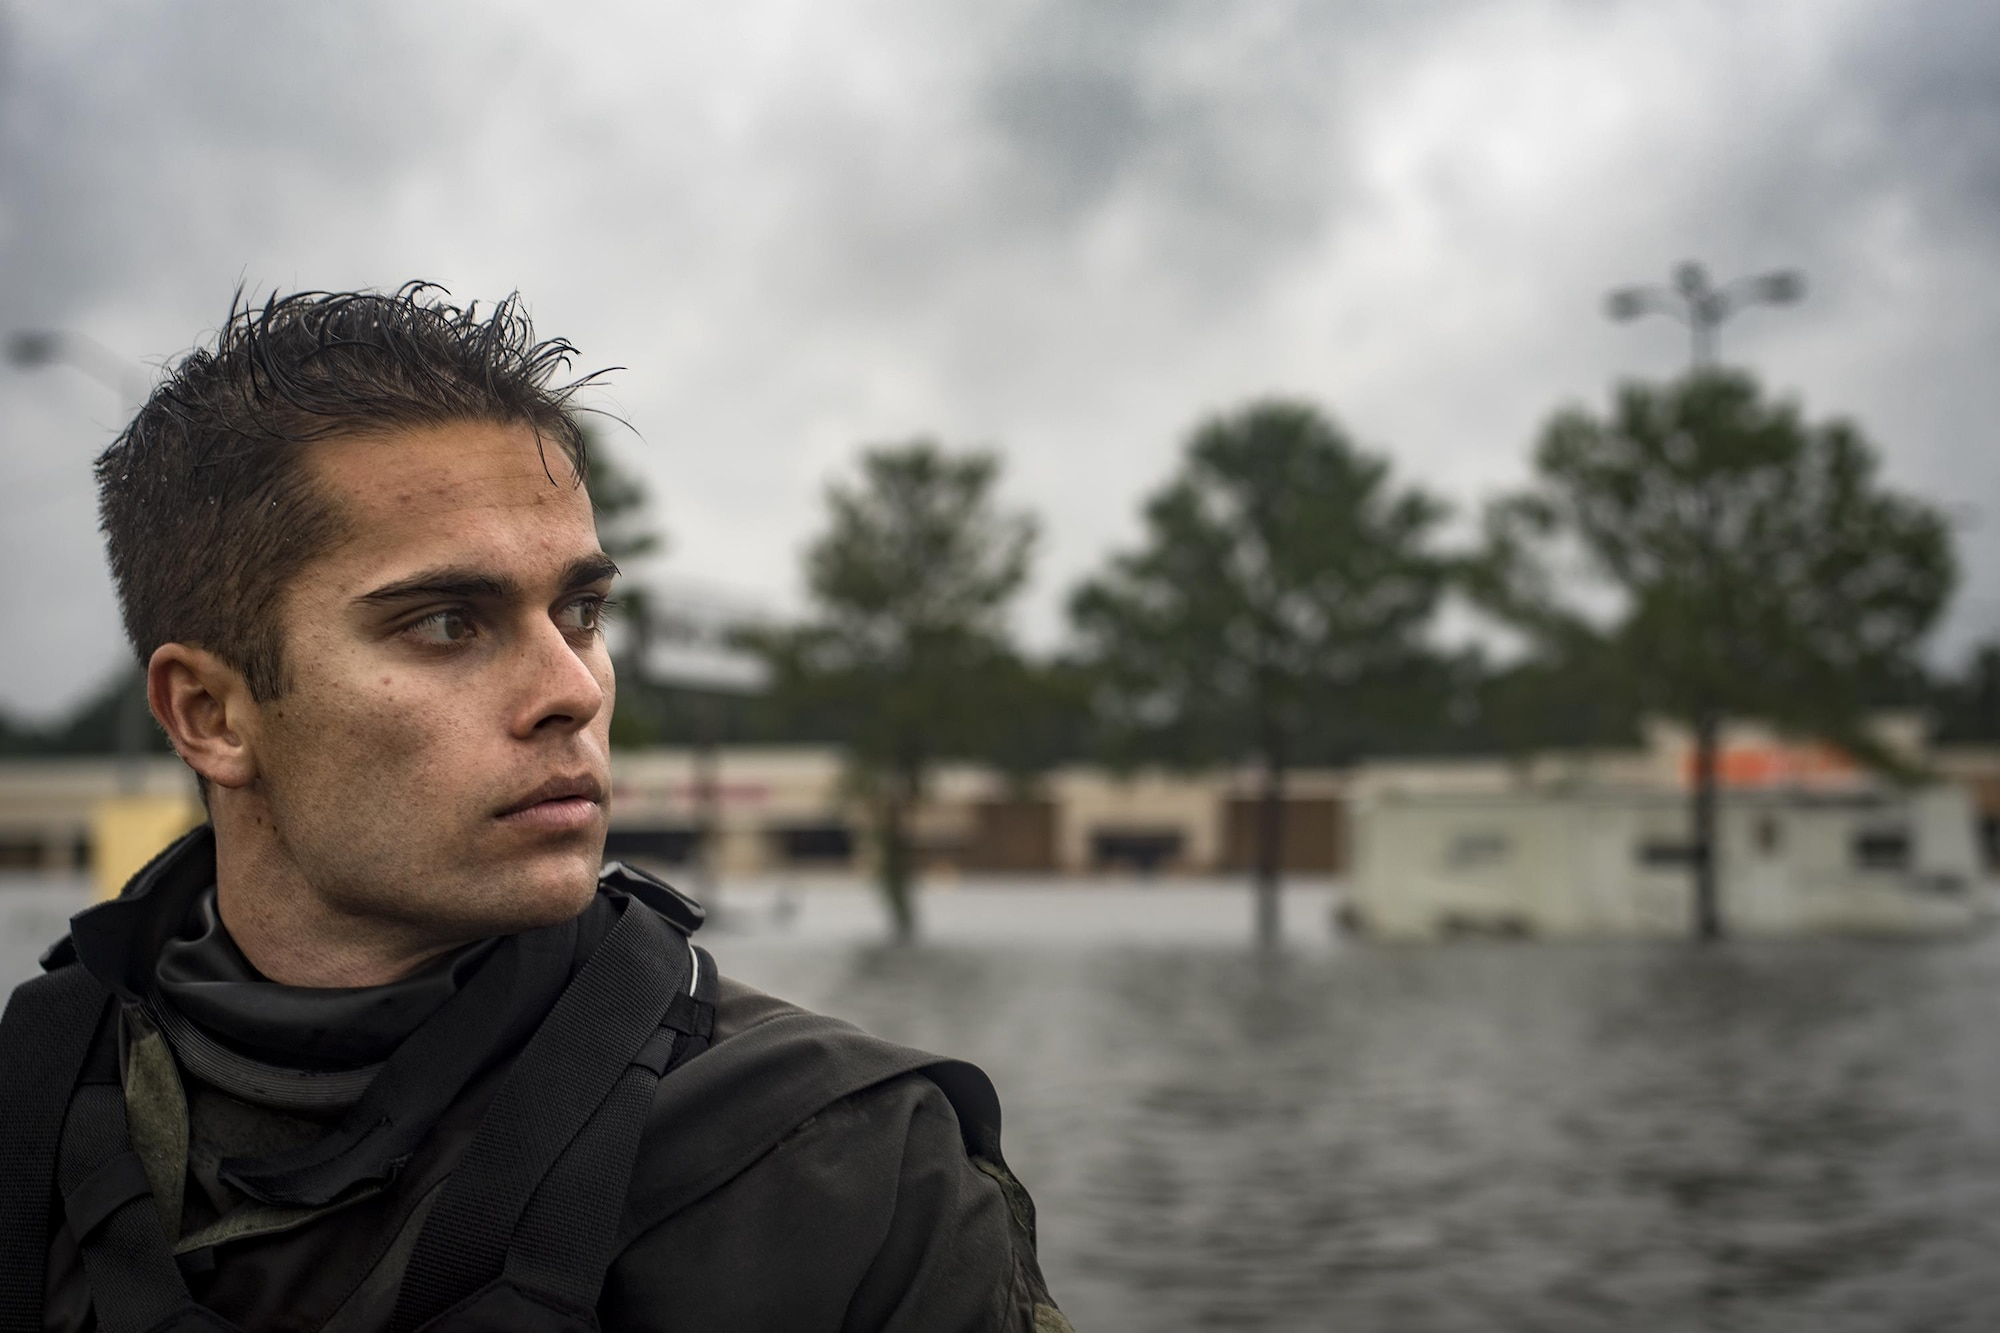 A pararescueman from the 58th Rescue Squadron surveys the flood waters from a rescue boat, Aug. 30, 2017, in Orange, Texas.